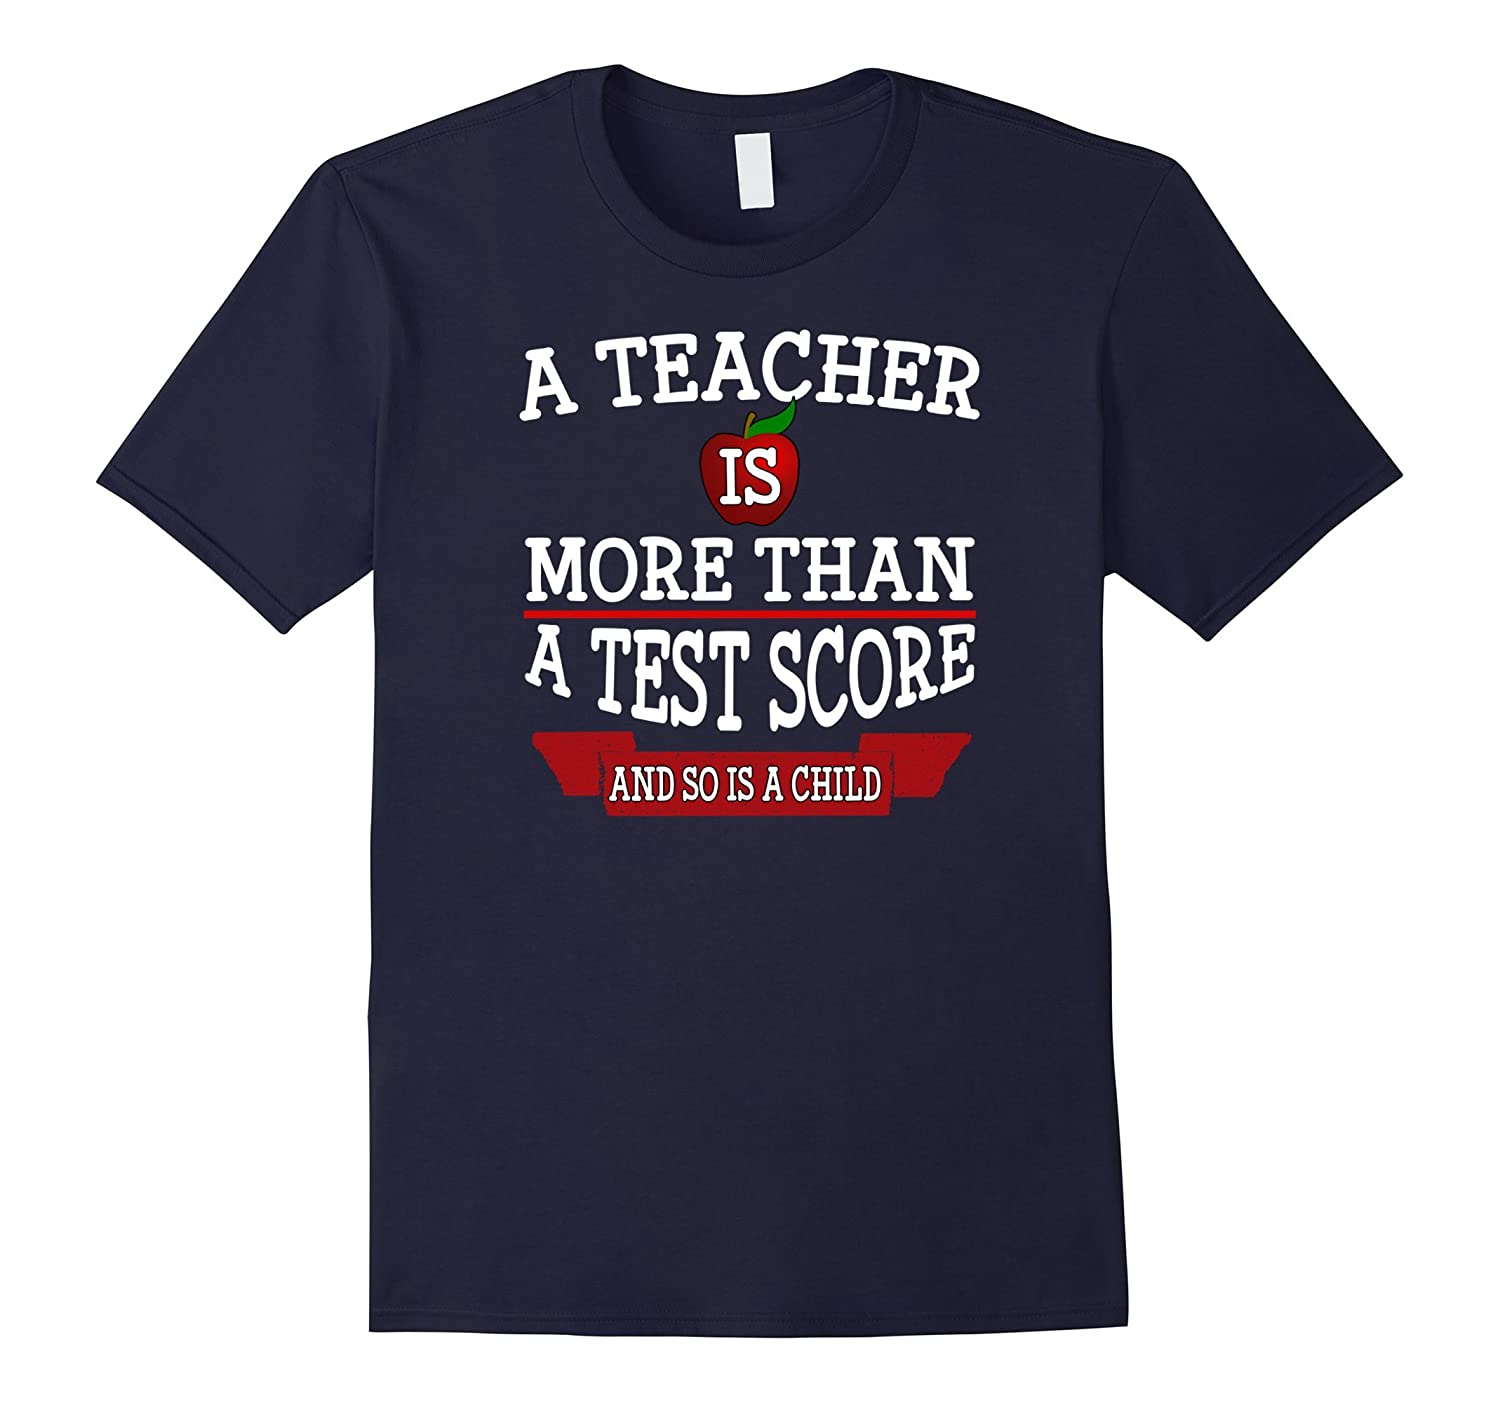 A Teacher Is More Than a Test Score And So Is a Child TShirt-BN